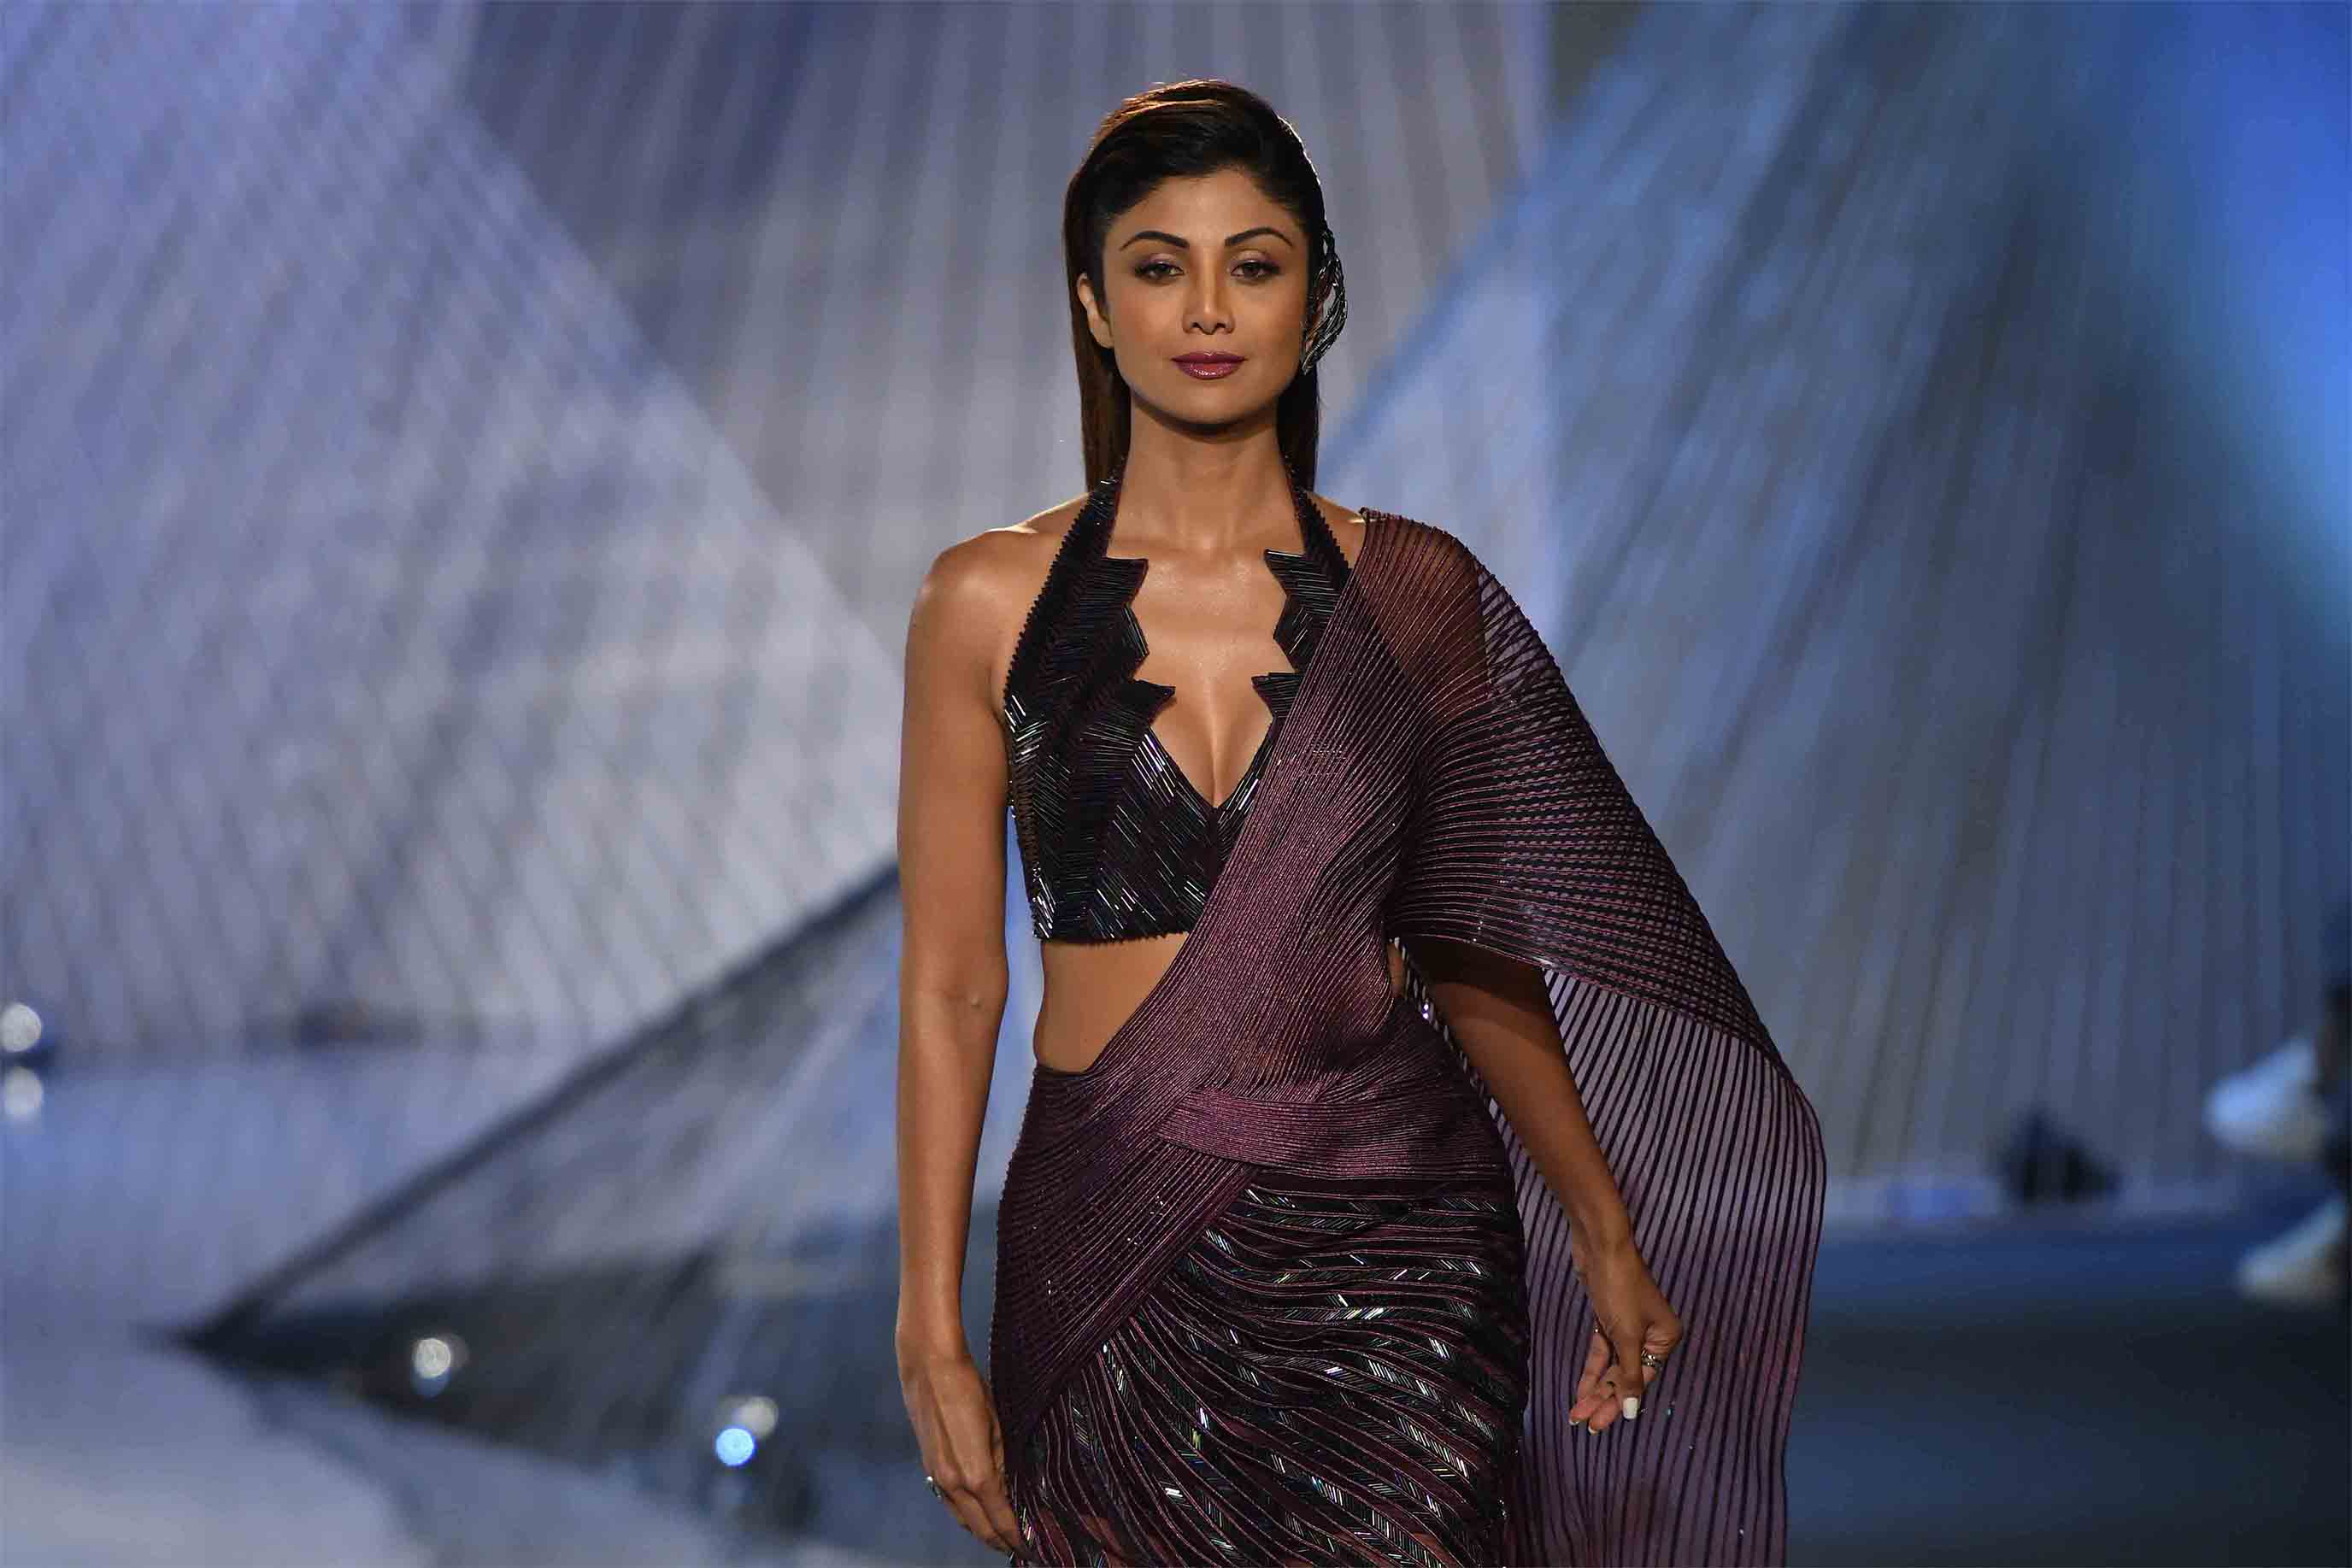 Amit Aggarwal, Couture, Fashion, Featured, India Couture Week, India Couture Week 2018, Online Exclusive, Shilpa Shetty Kundra, Style, Suneet Varma